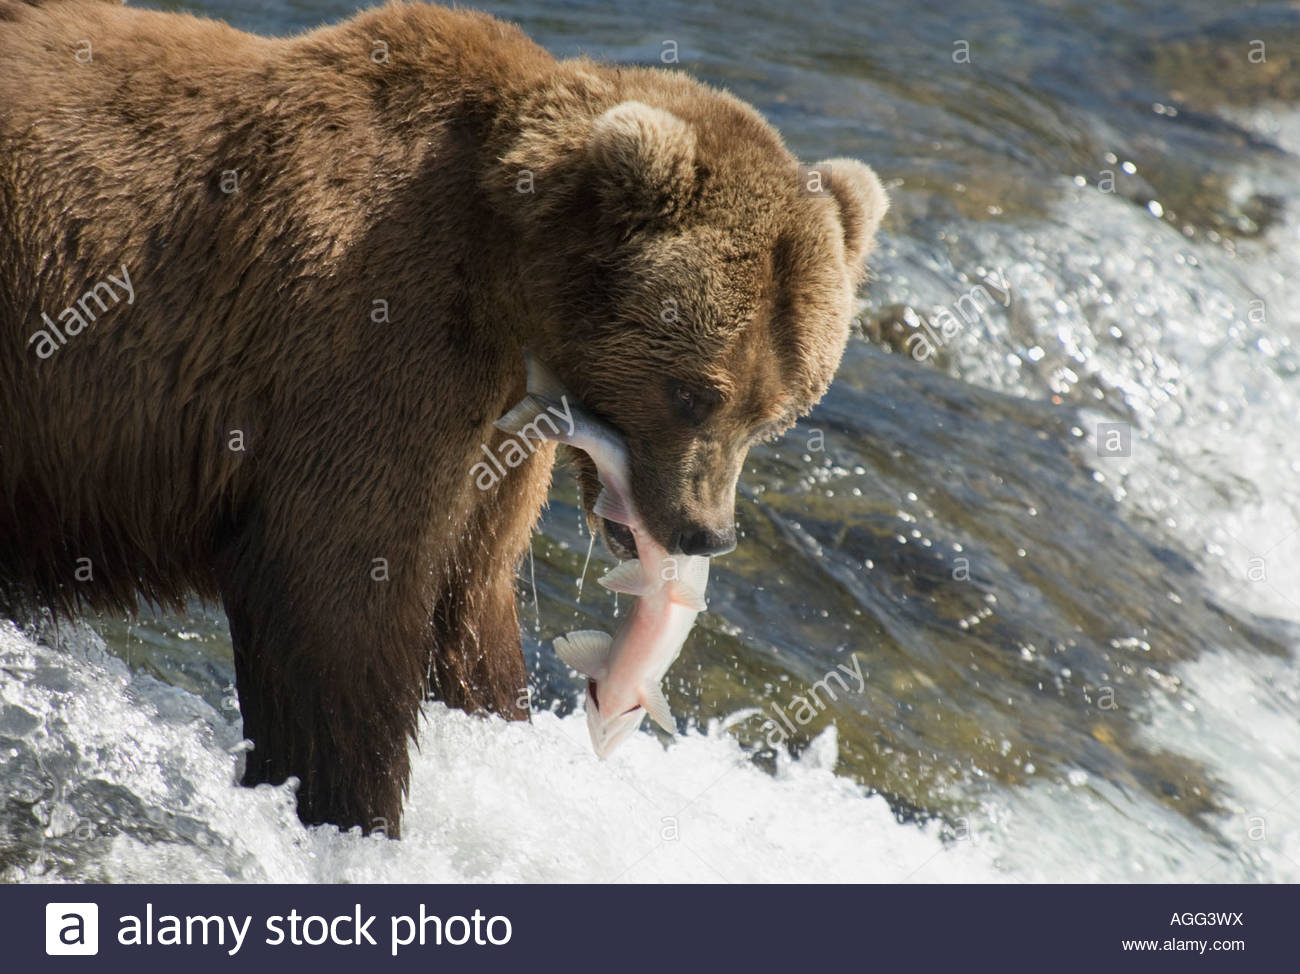 Le Grizzli de l'Alaska avec un saumon dans sa bouche, Brooks River, Katmai National Park, Alaska, USA Photo Stock